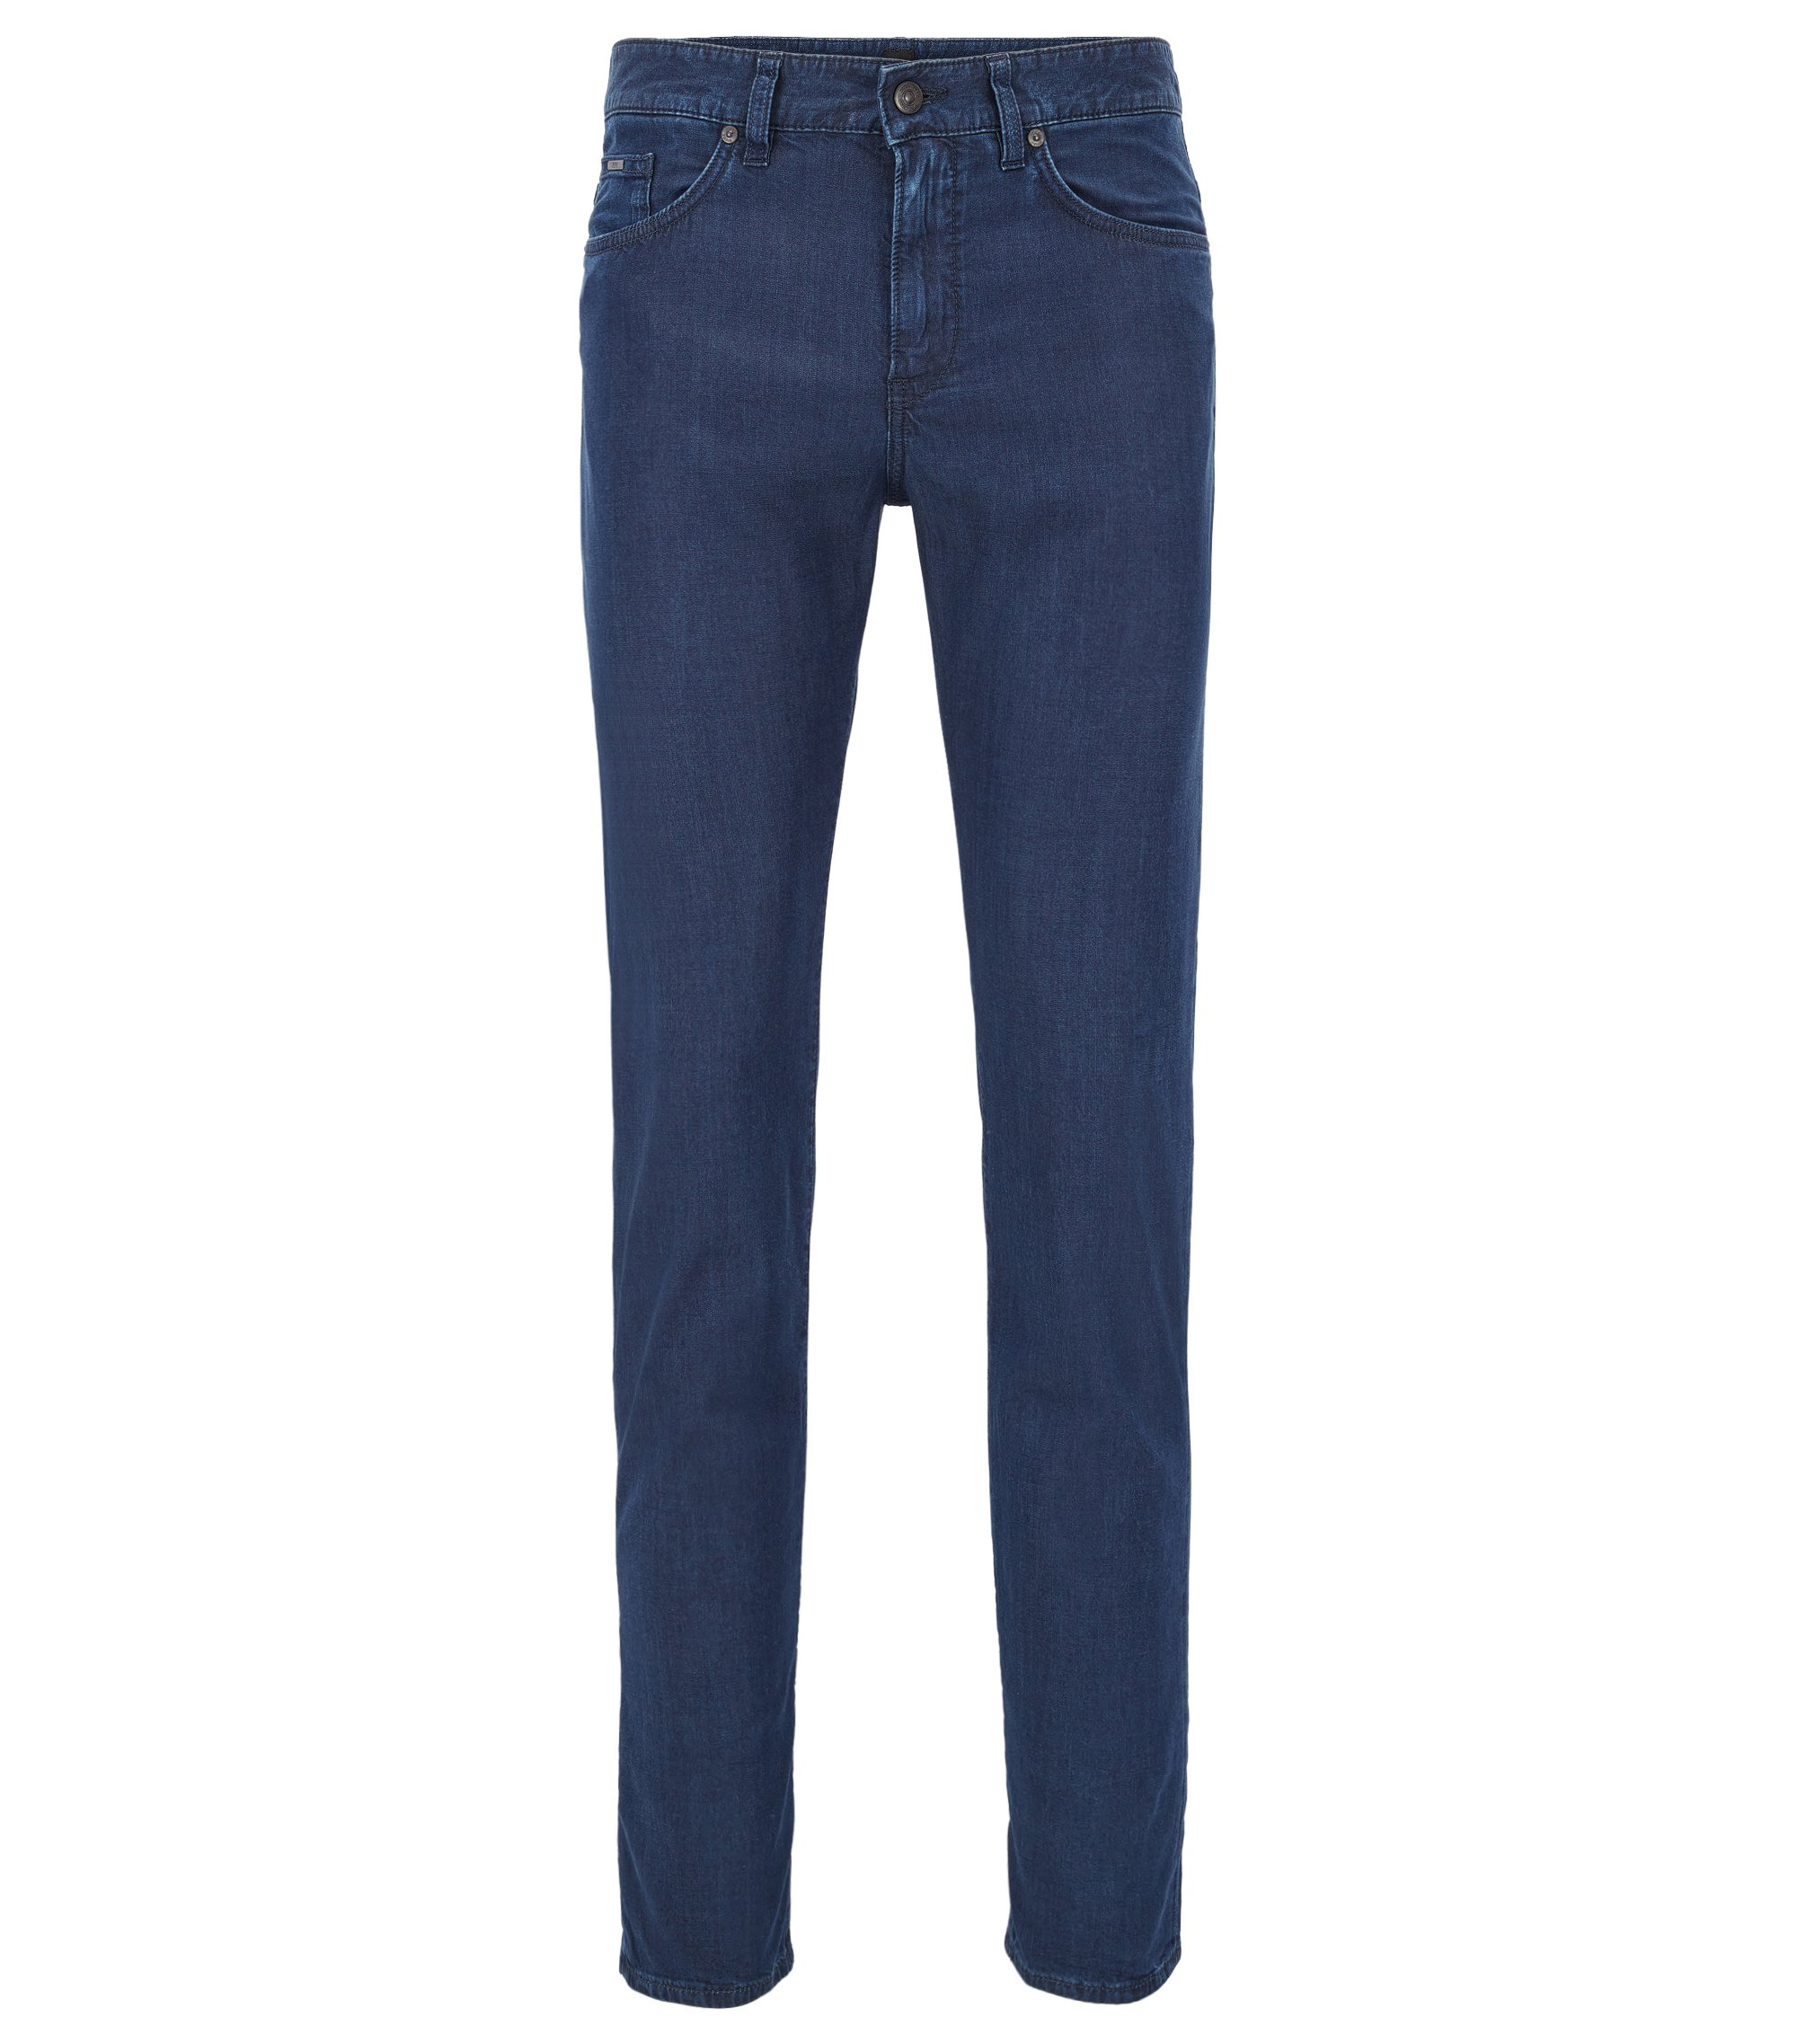 Stretch Jean, Slim Fit | Delaware, Dark Blue